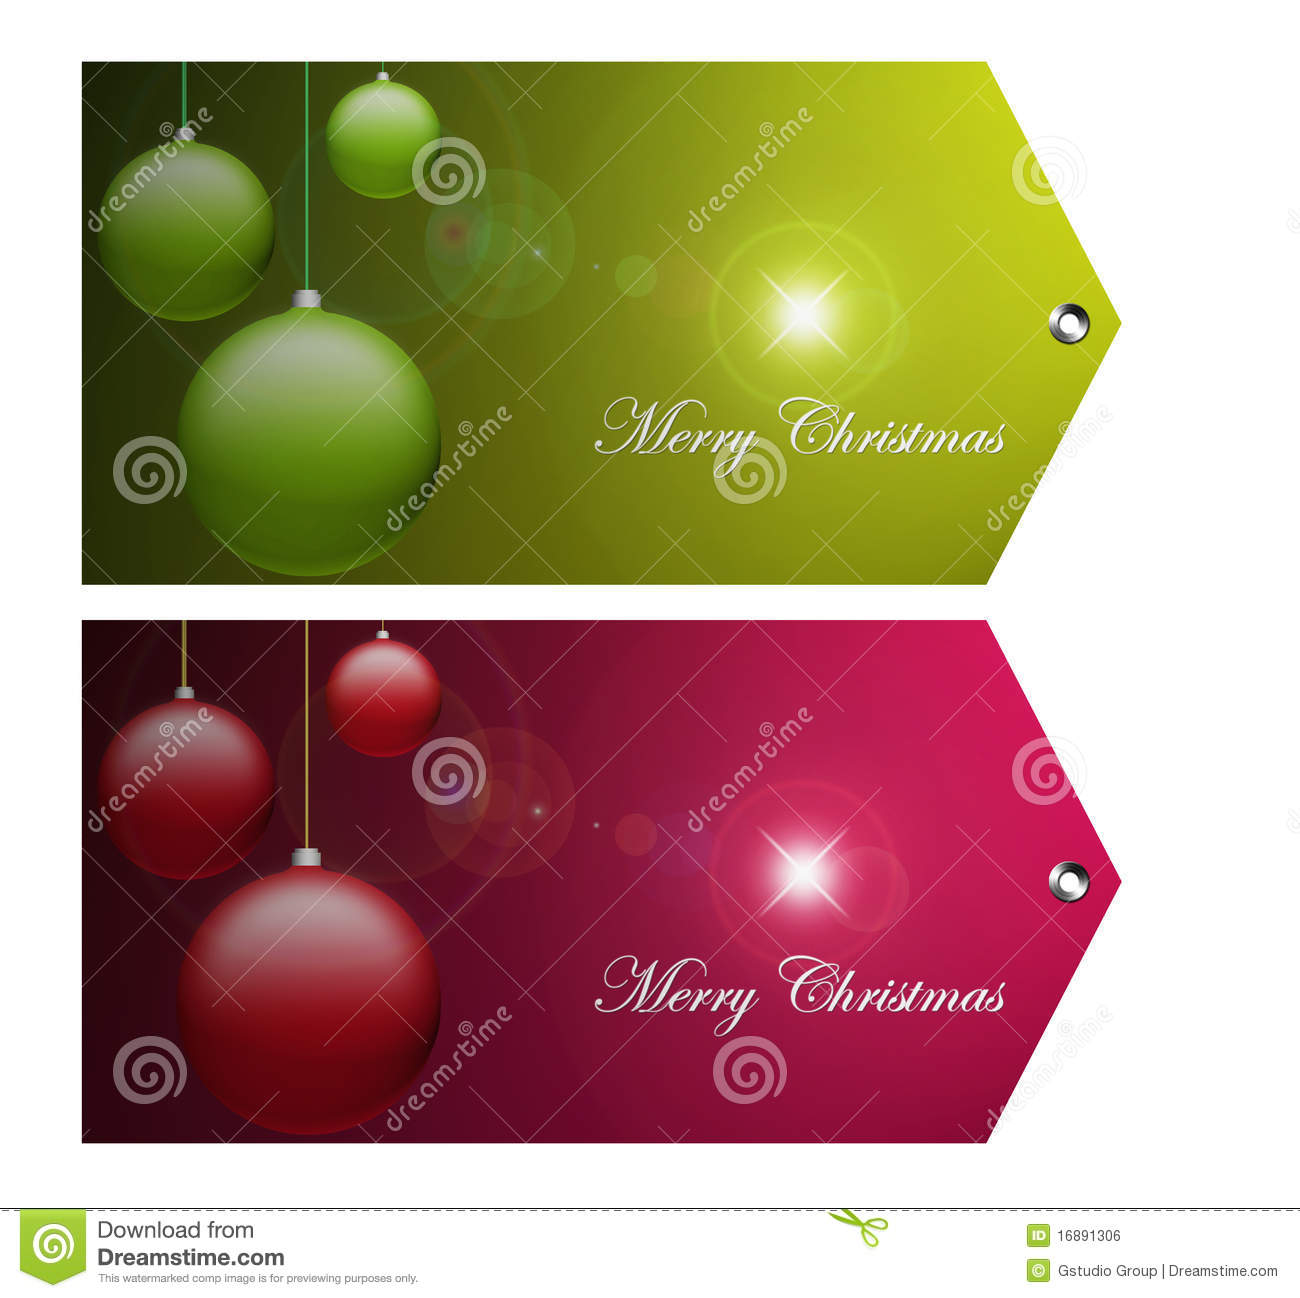 Merry christmas cards stock illustration. Illustration of happy ...